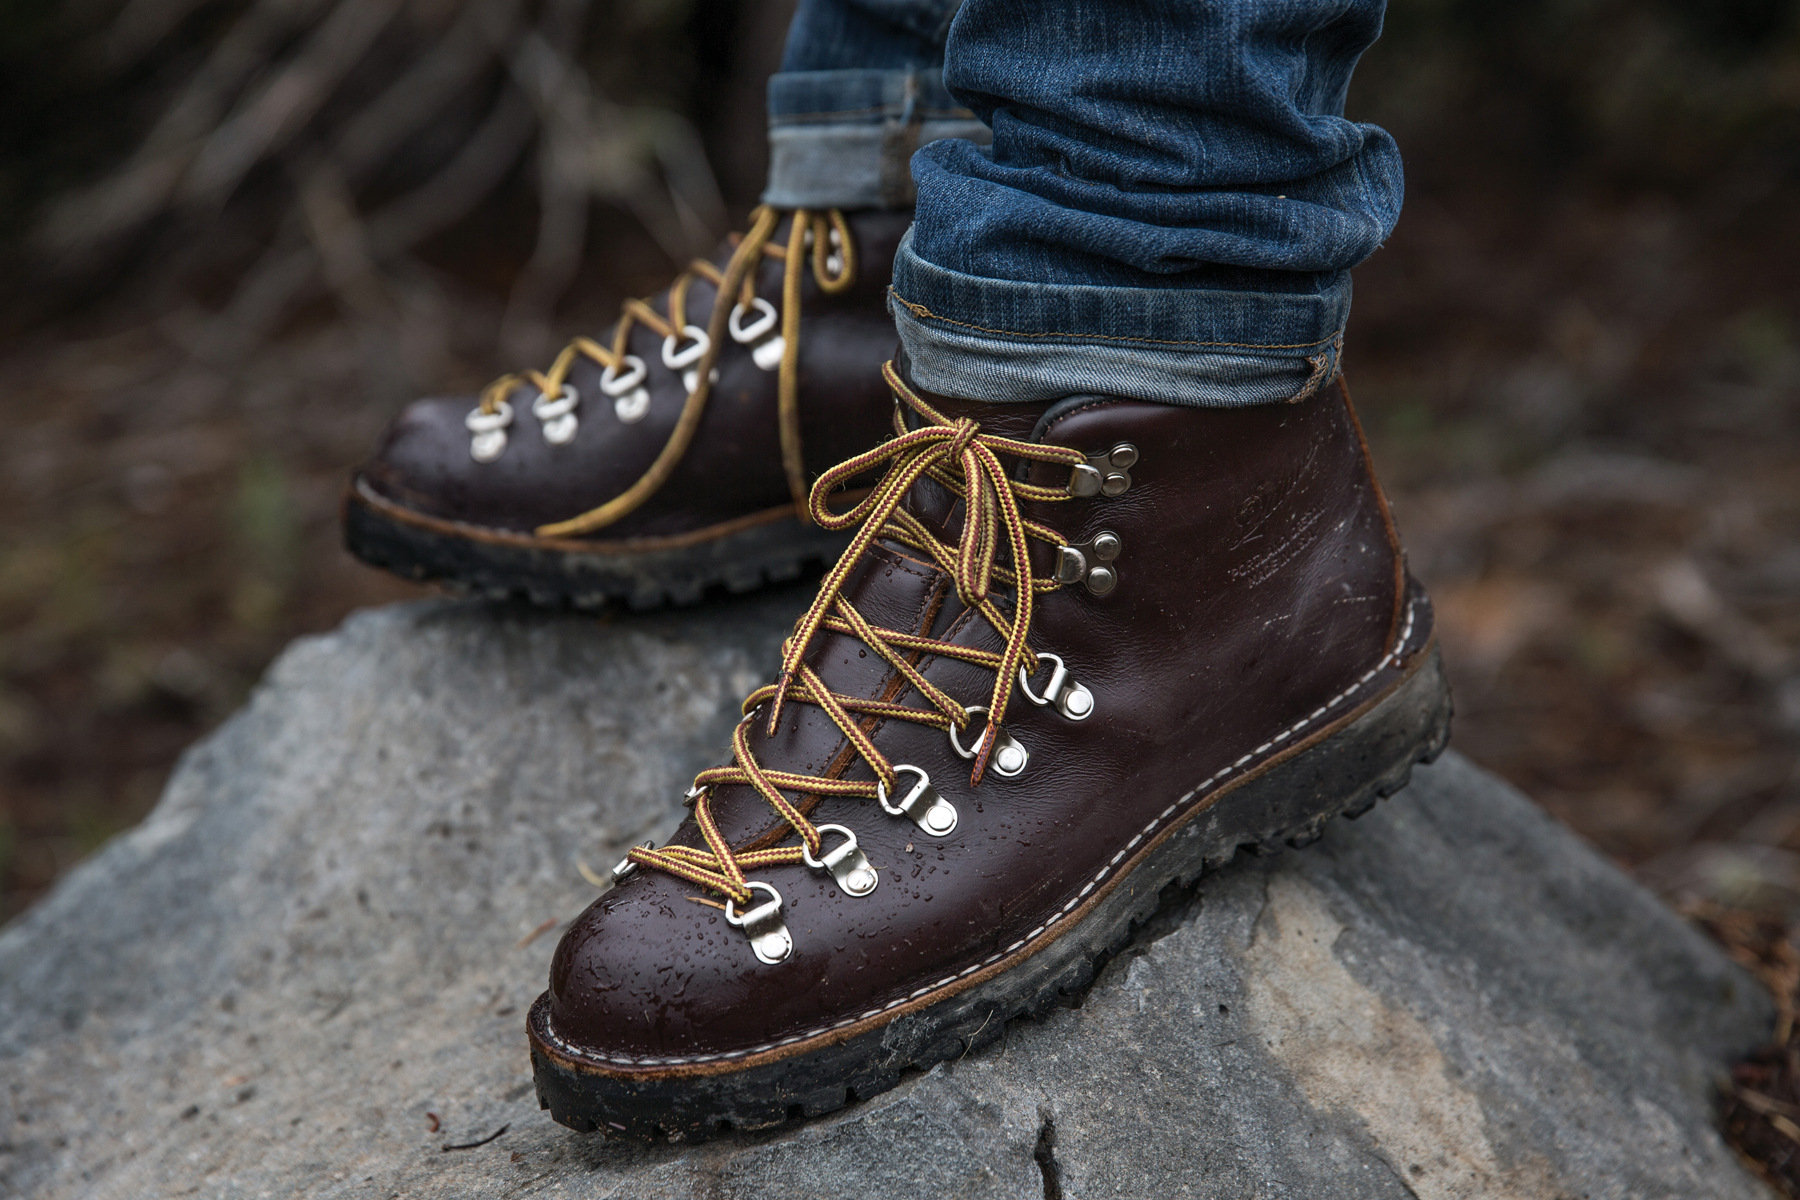 Danner_Boot_Rock copy.jpg